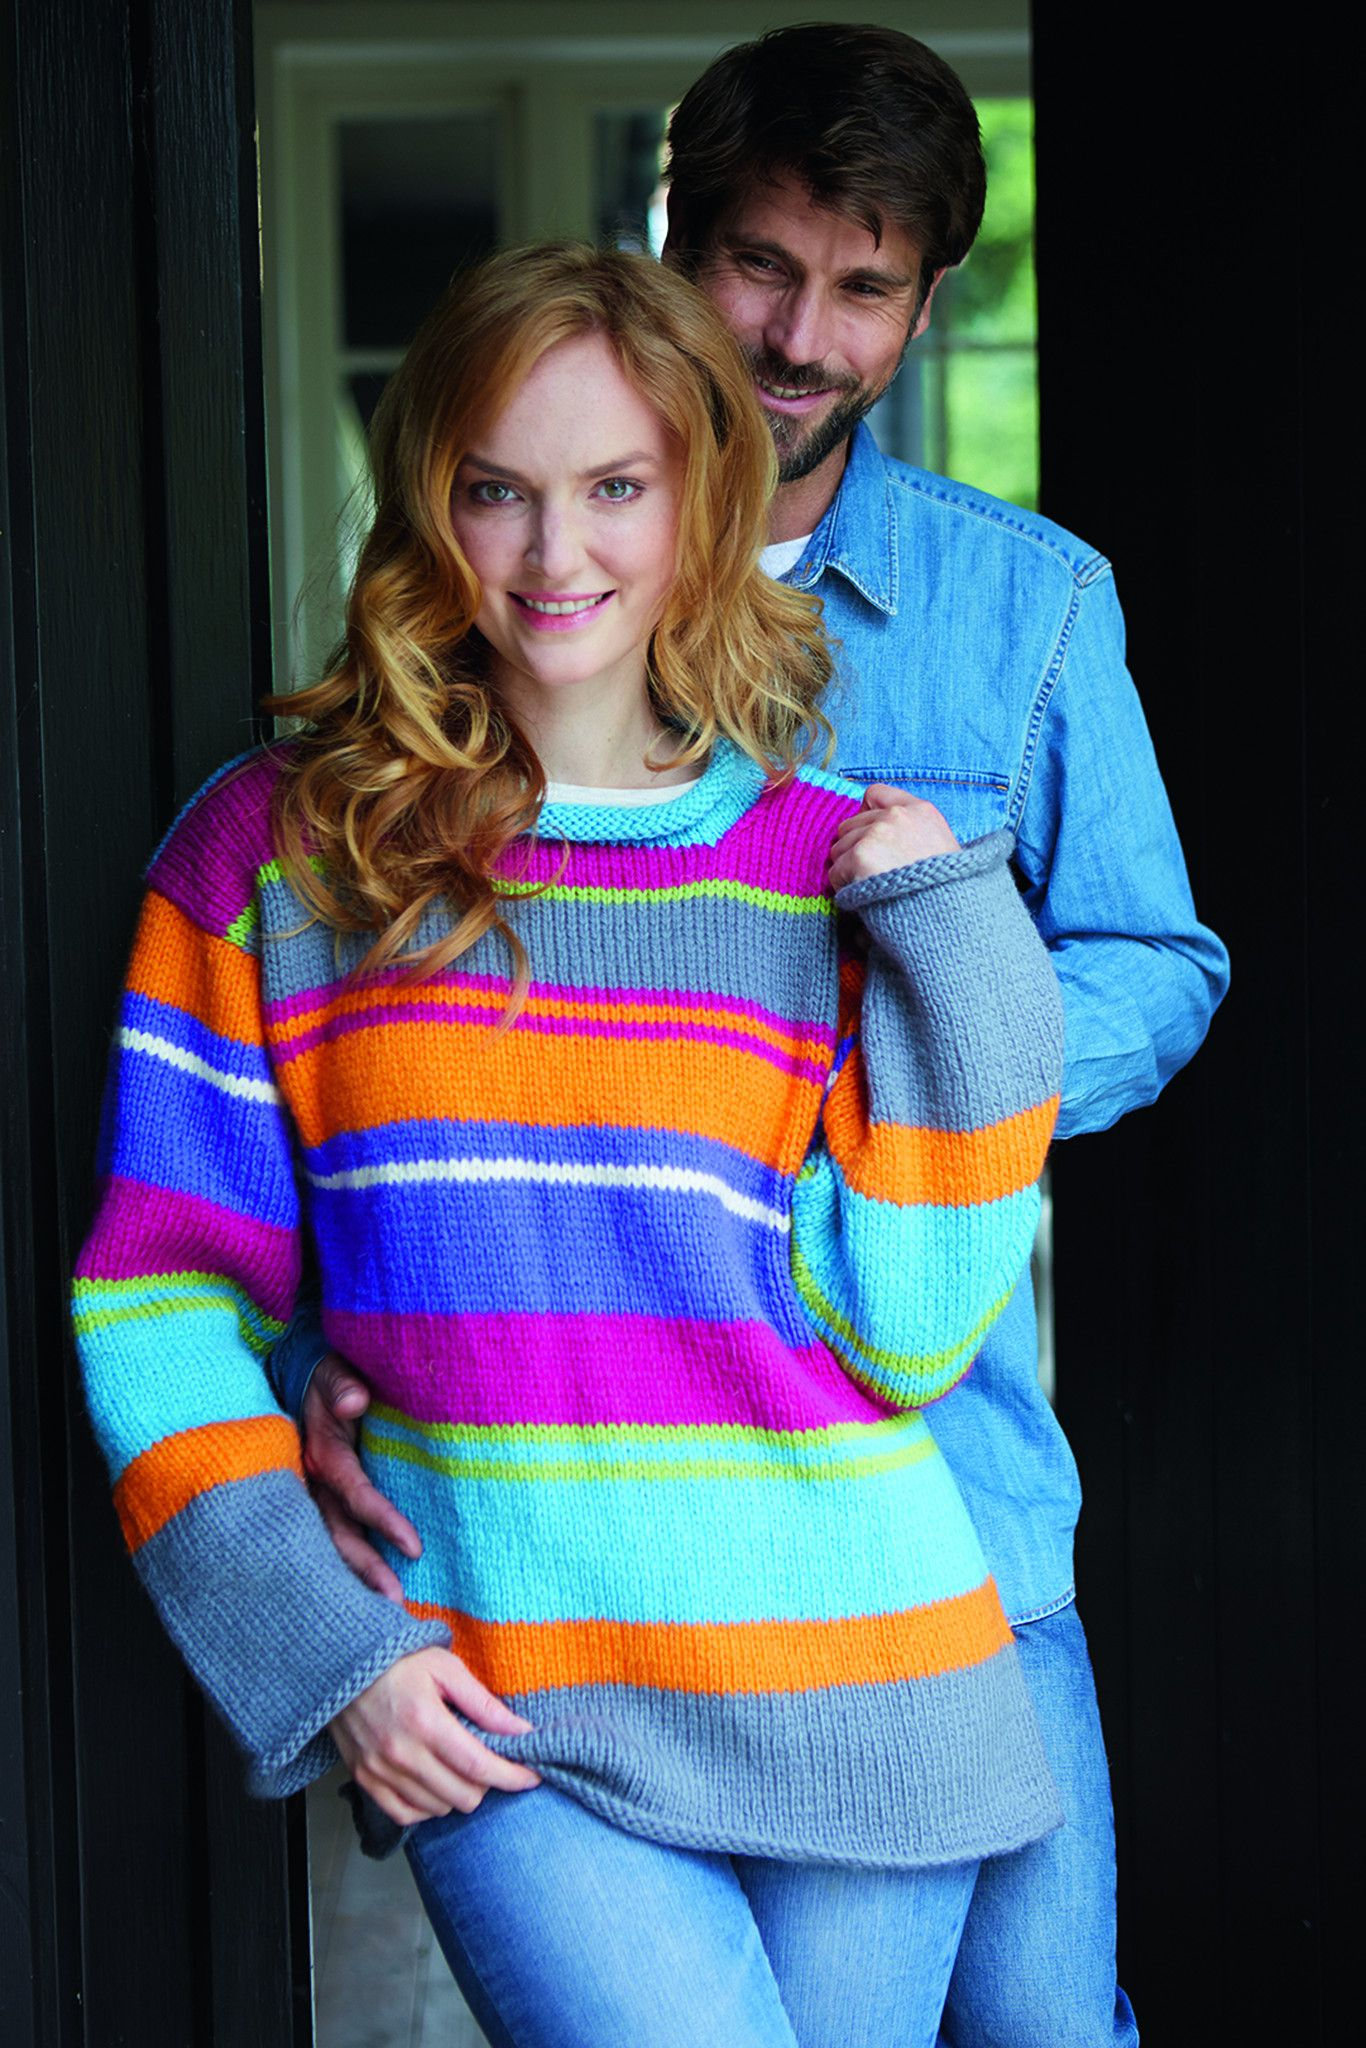 Striped Unisex Jumper Knitting Pattern (With images ...